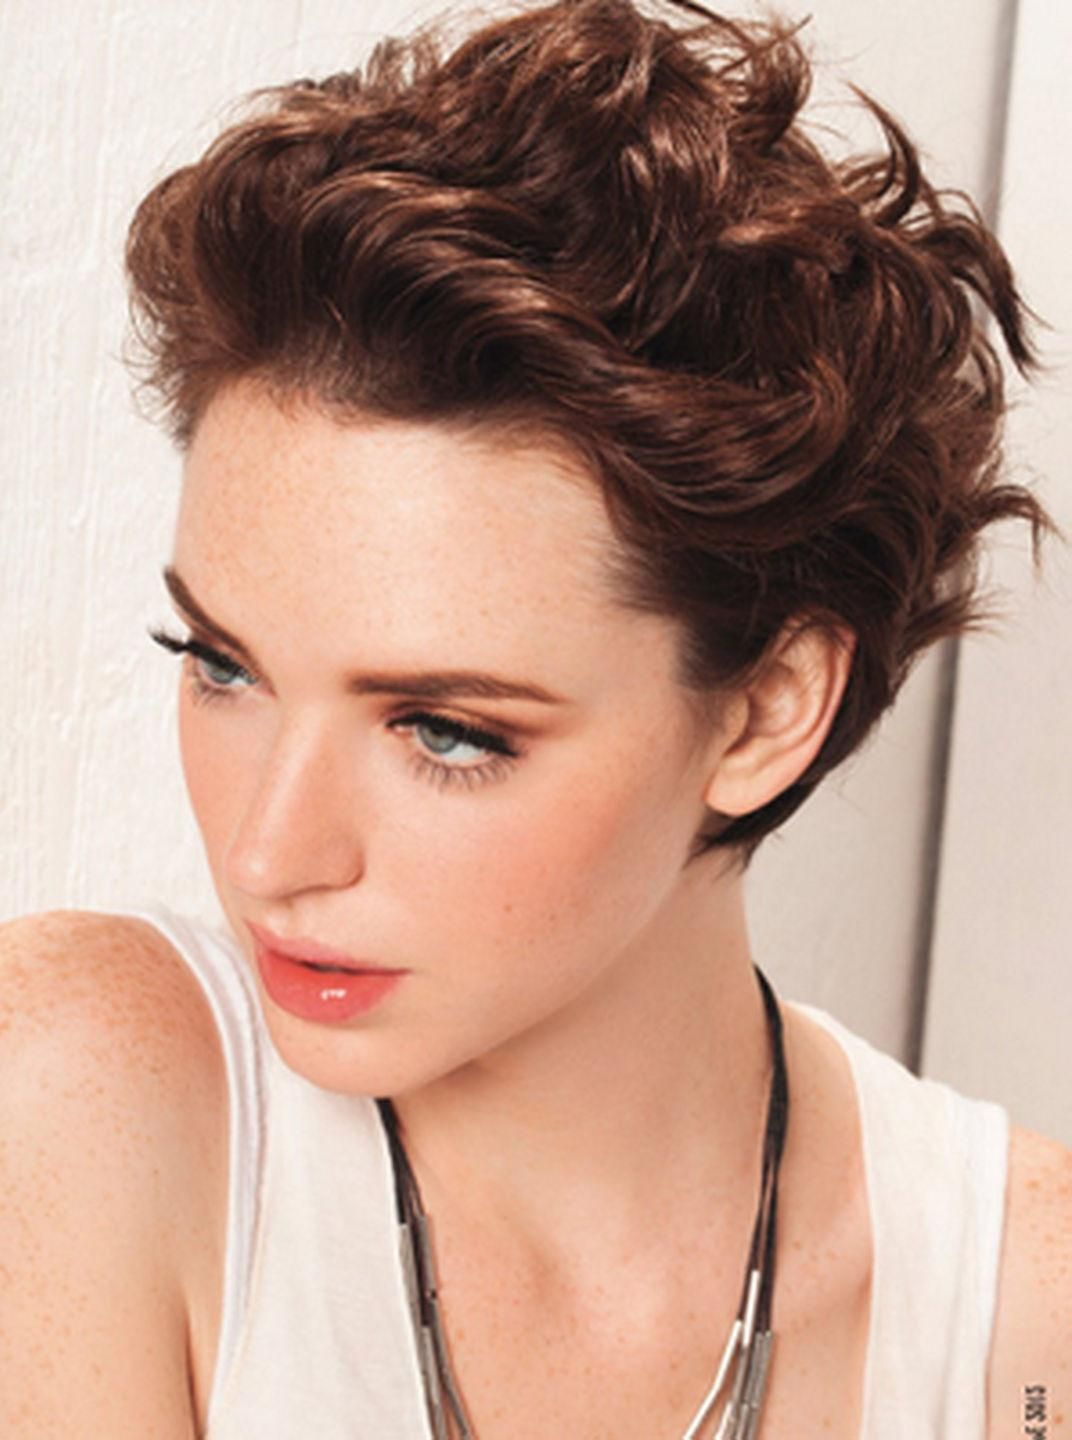 pin by sarah loov on hairstyles and trends | short haircuts